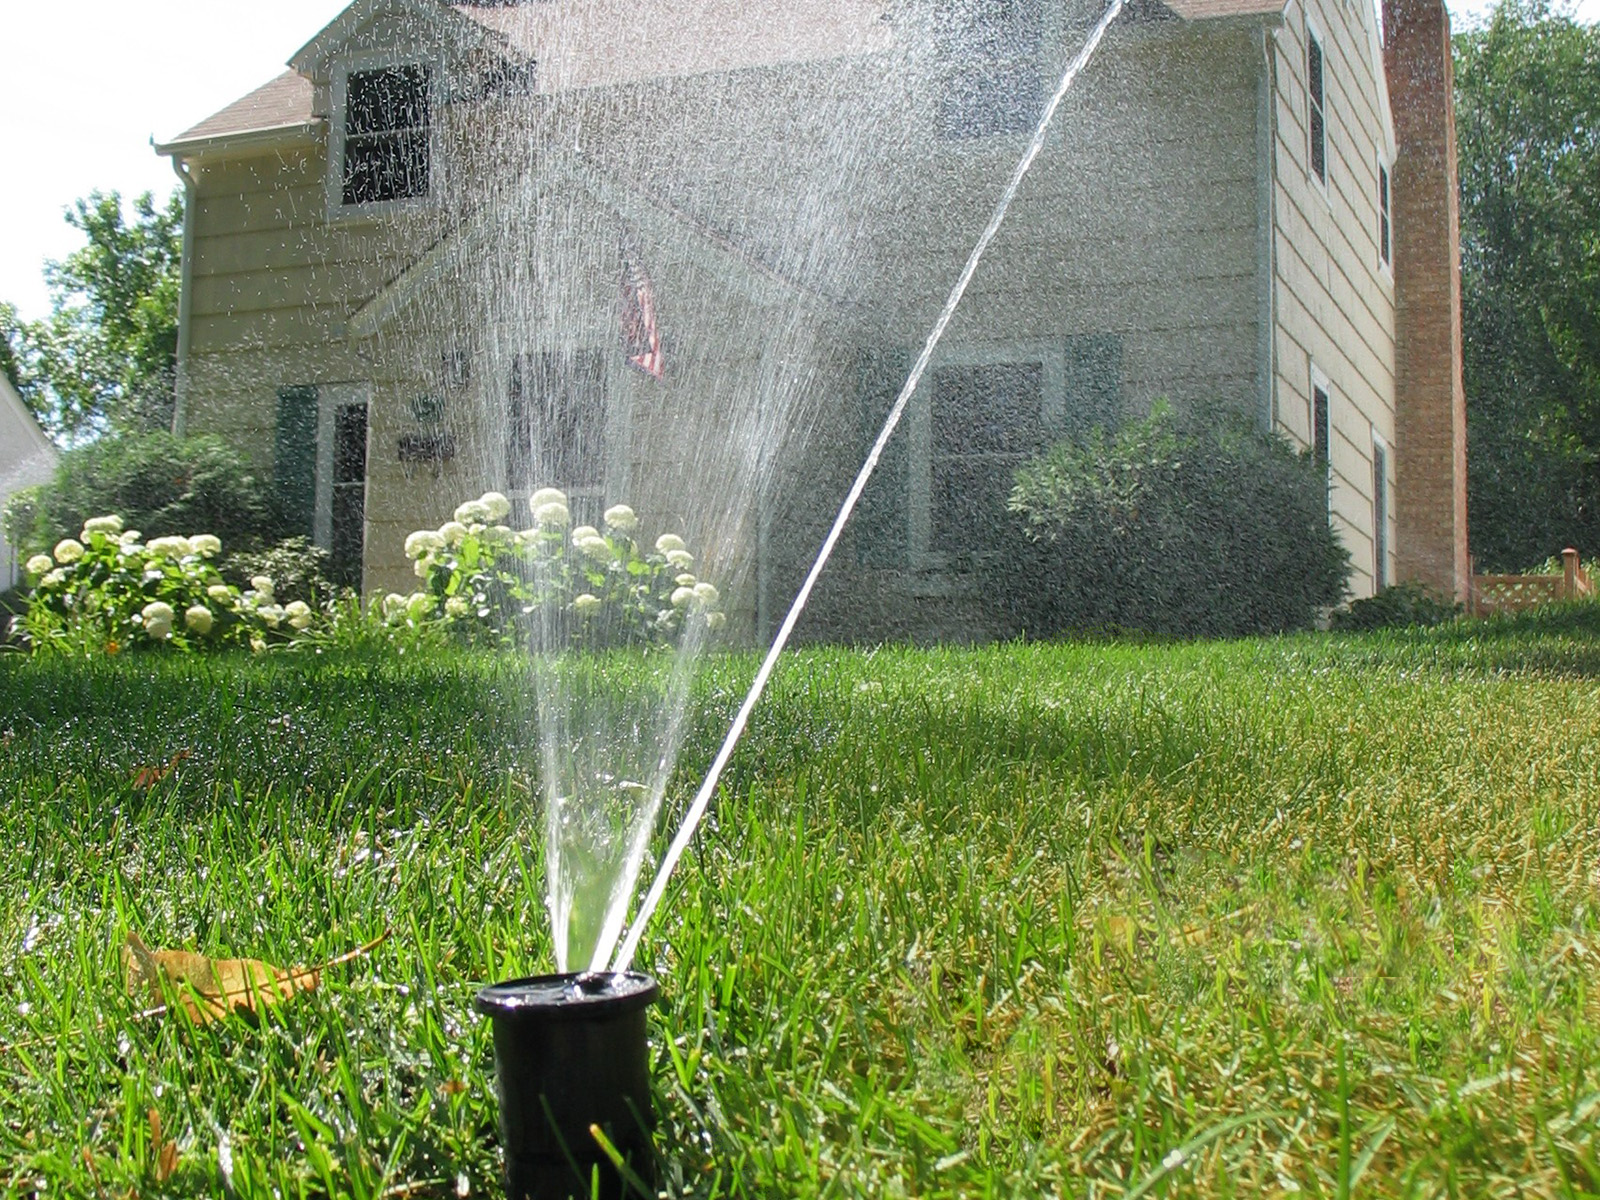 Irrigation Service And Landscape Management Commercial Hoa Residential Irrigation By Design